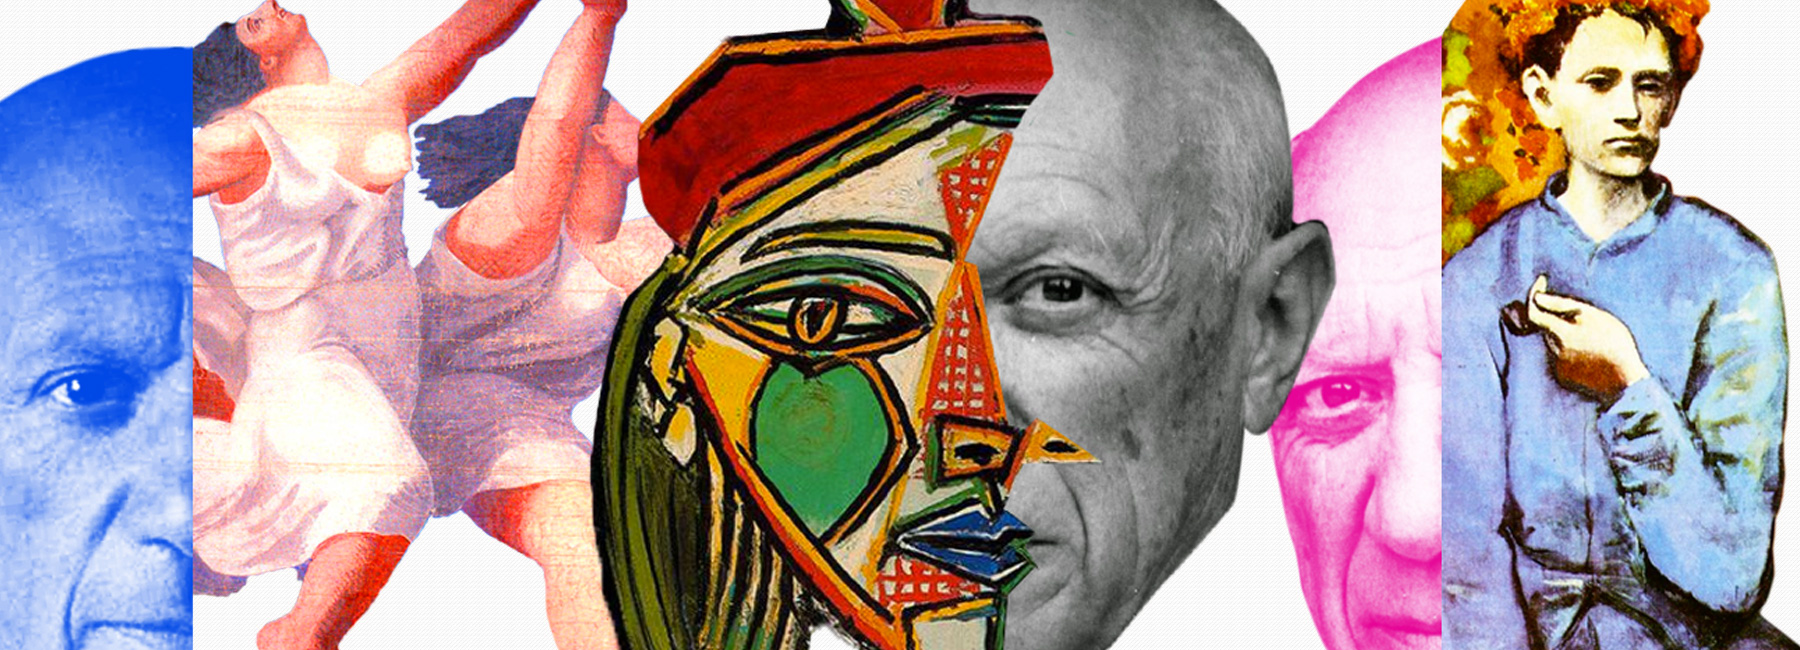 musee-picasso-zoom-long